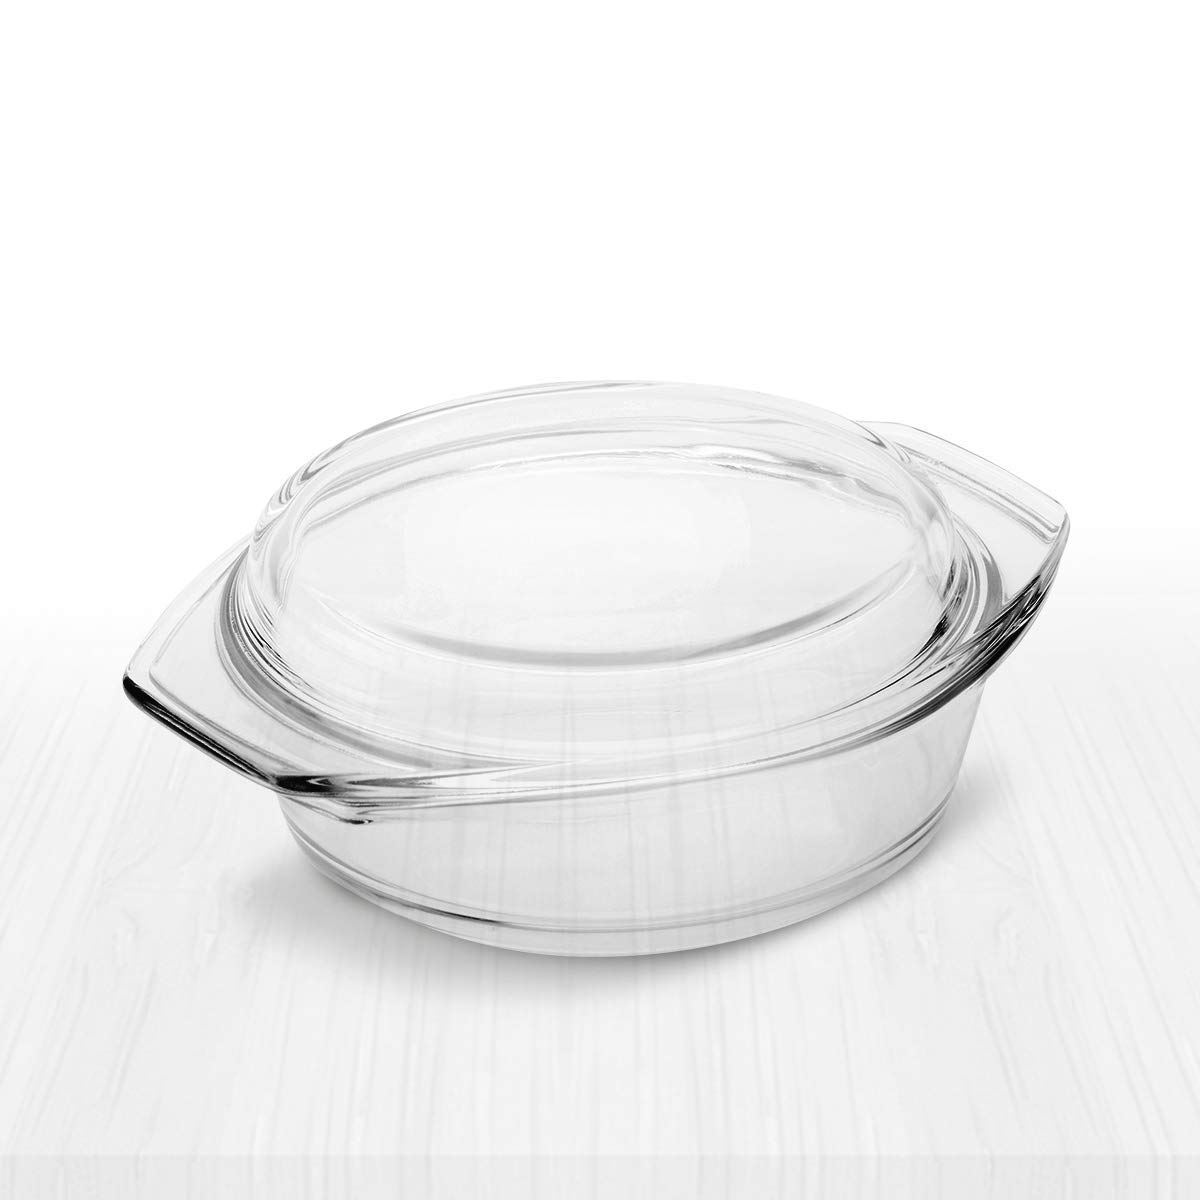 Simax Clear Round Glass Casserole | With Lid, Heat, Cold and Shock Proof, Made in Europe, Oven, Freezer and Dishwasher Safe, 1.5 Quart